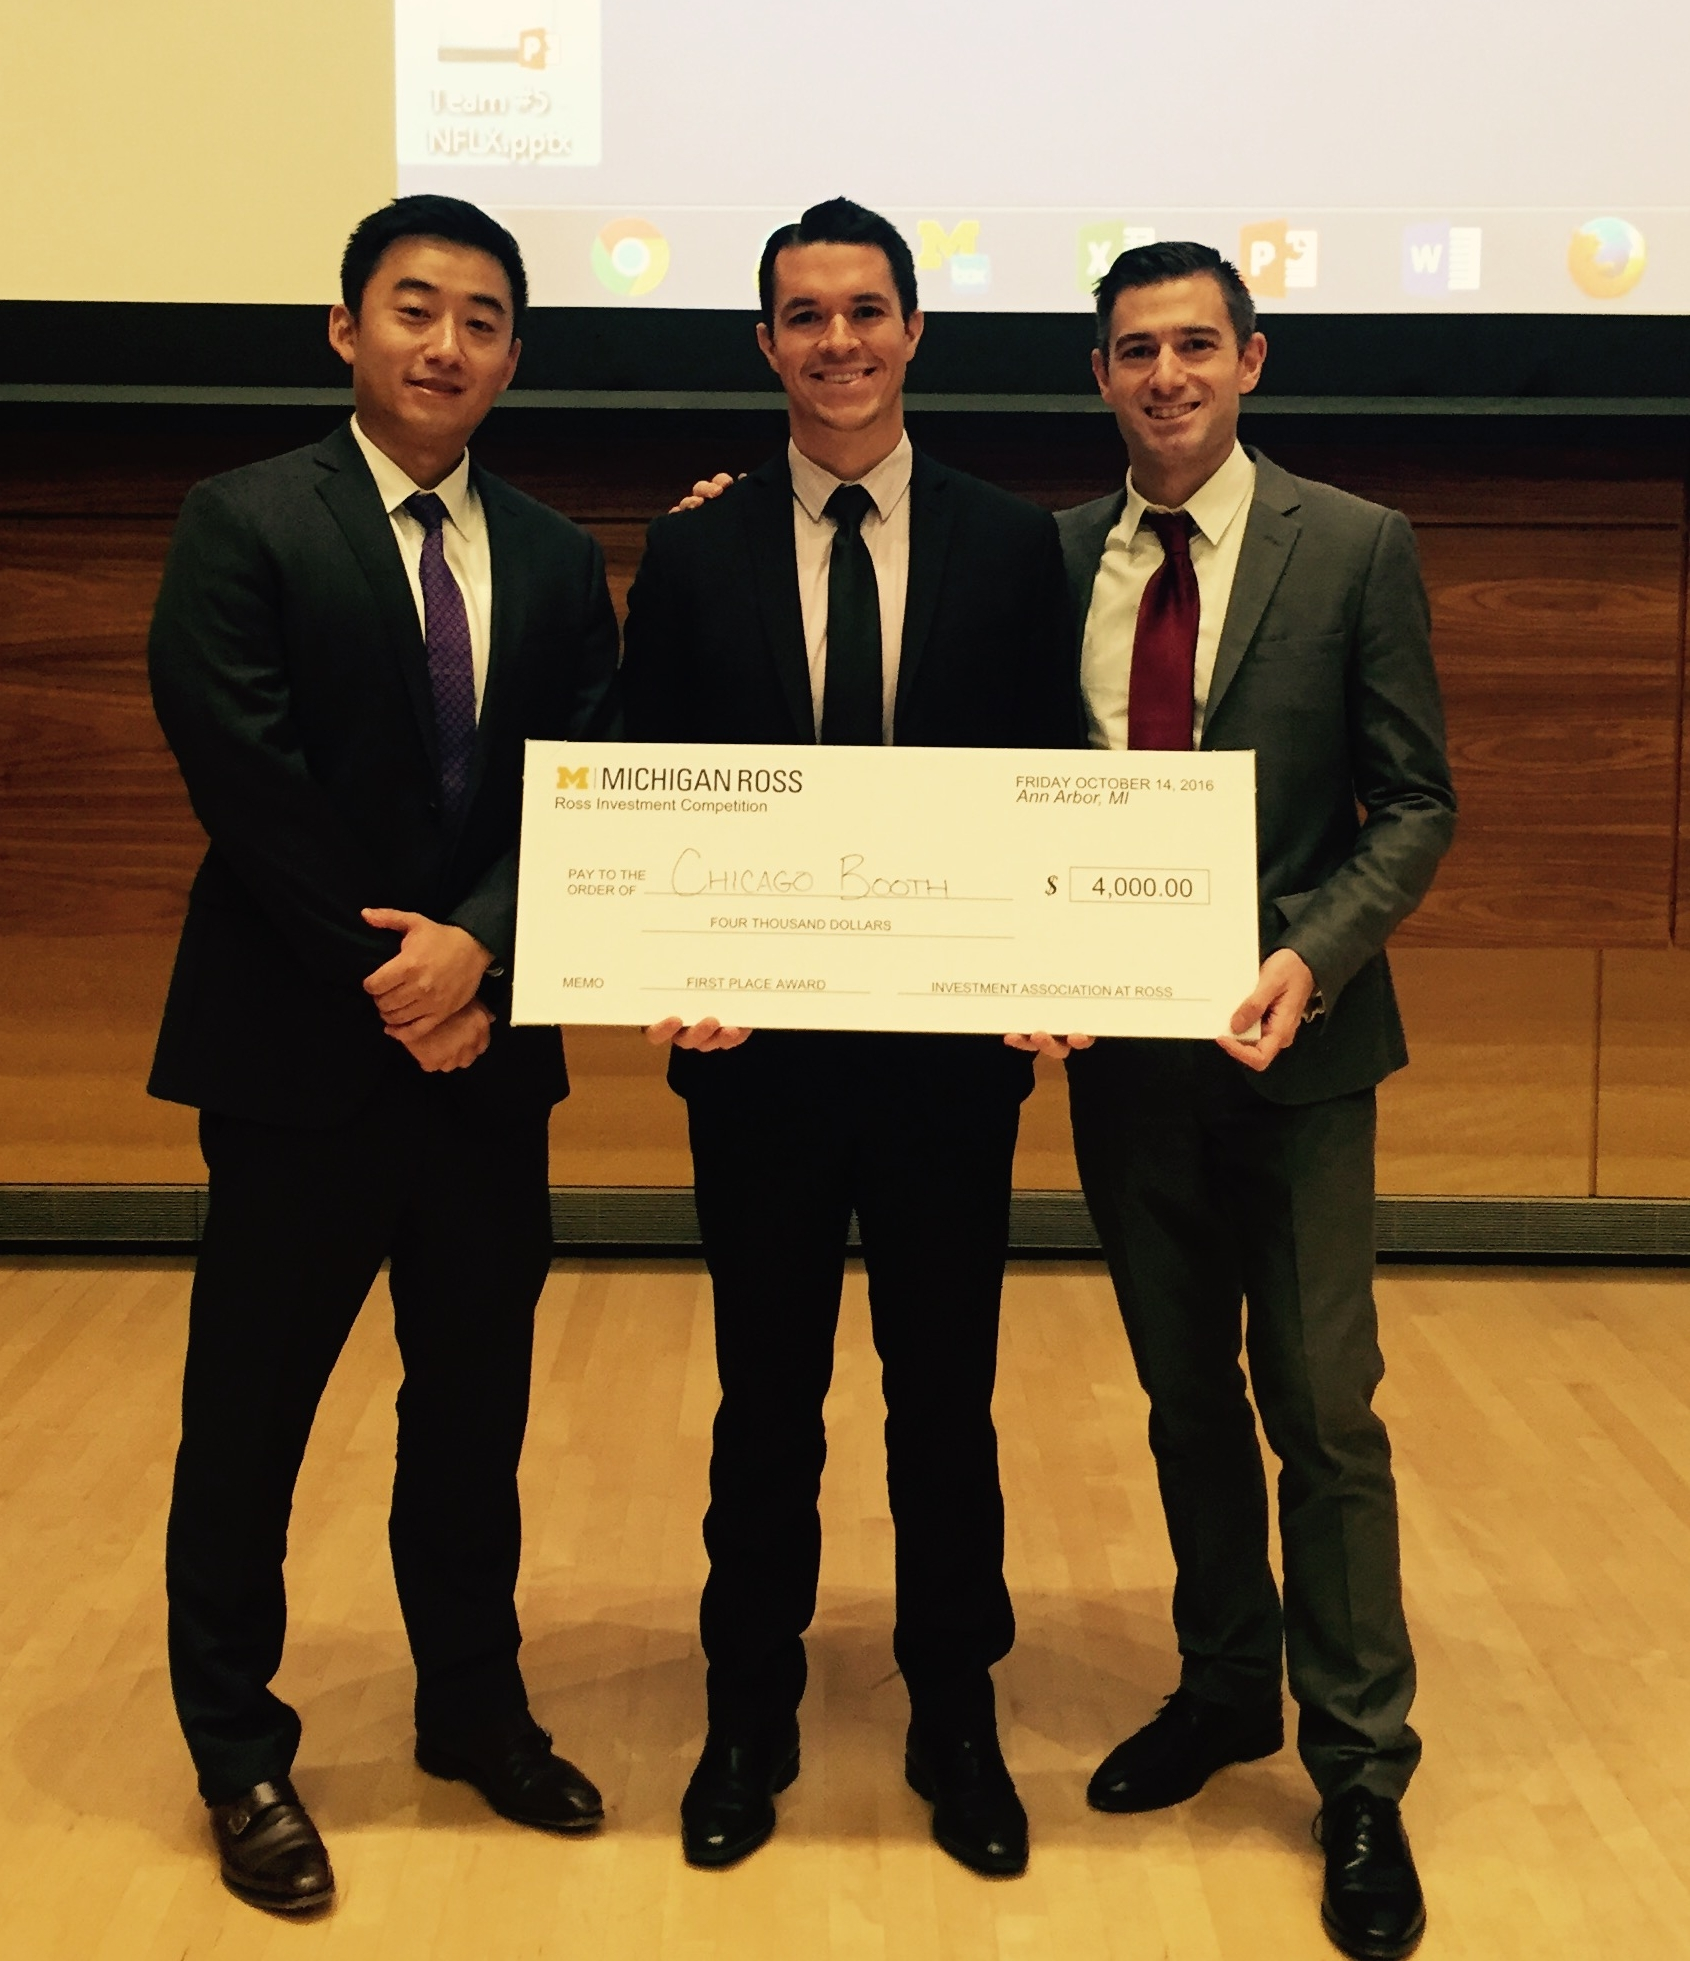 Brett Bateman ('18), Wyan Yarbrough ('18), and Jack Zhao ('18) brought home a 1st place win for Booth, annihilating the steep competition at this year's Ross Investment Competition.